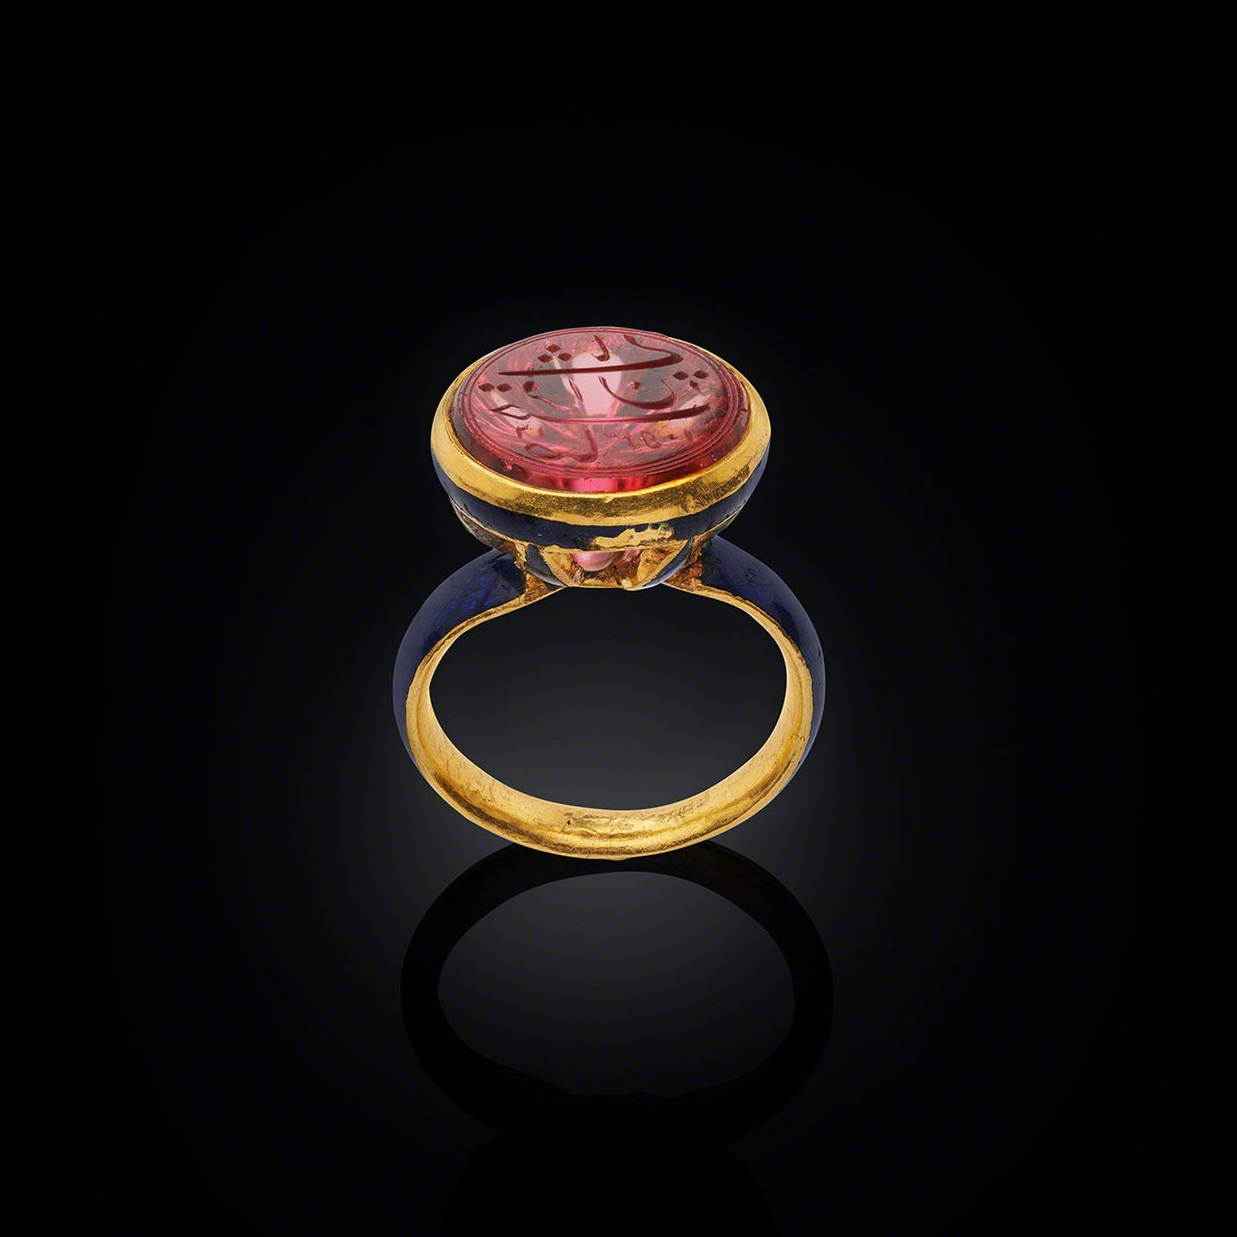 "Ring with Shah Jahan's Spinel    North India, the spinel dated AH 1053 (AD 1643– 44); the ring, c. 1900Gold with enamel, the spinel inscribed in Persian: Sahib qiran-i thani (""Second Lord of the Auspicious Conjunction"")    Dating from 1643, this spinel is engraved on the reverse ""Sahib qiran-I thani"" which translates as ""Second Lord of the Auspicious Conjunction"", the title of Emperor Shah Jahan who ruled 1628 - 1658. The title was chosen by Shah Jahan himself in reference to Timur (Tamerlane), the Mughals' dynastic ancestor, who bore the title ""Lord of the Auspicious Conjunction"". It is most likely that the engraving on the spinel was also the sovereign's personal seal. Image courtesy: © The Al Thani Collection"